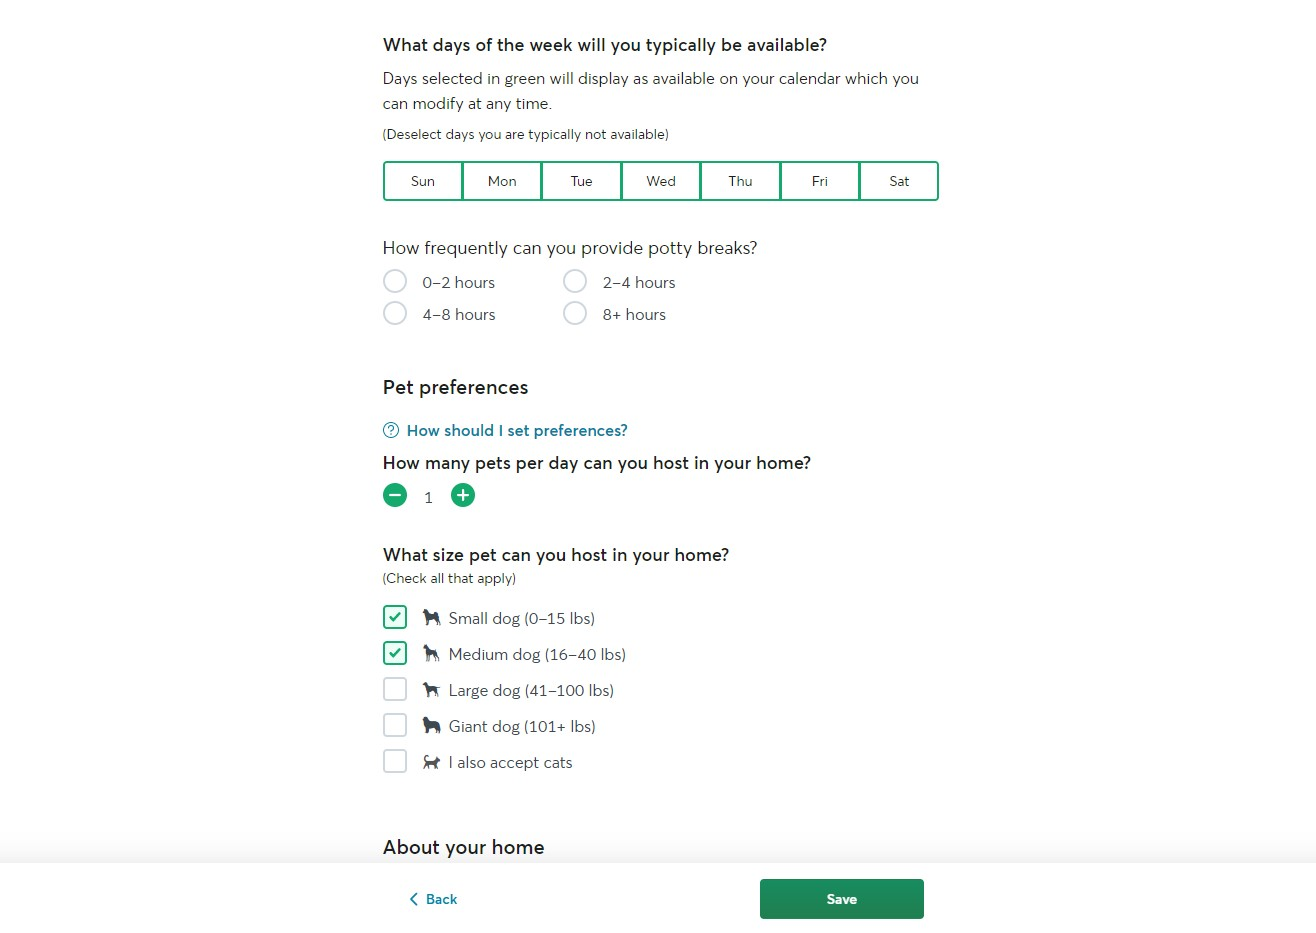 Sign up as a dog sitter on Rover - step 2